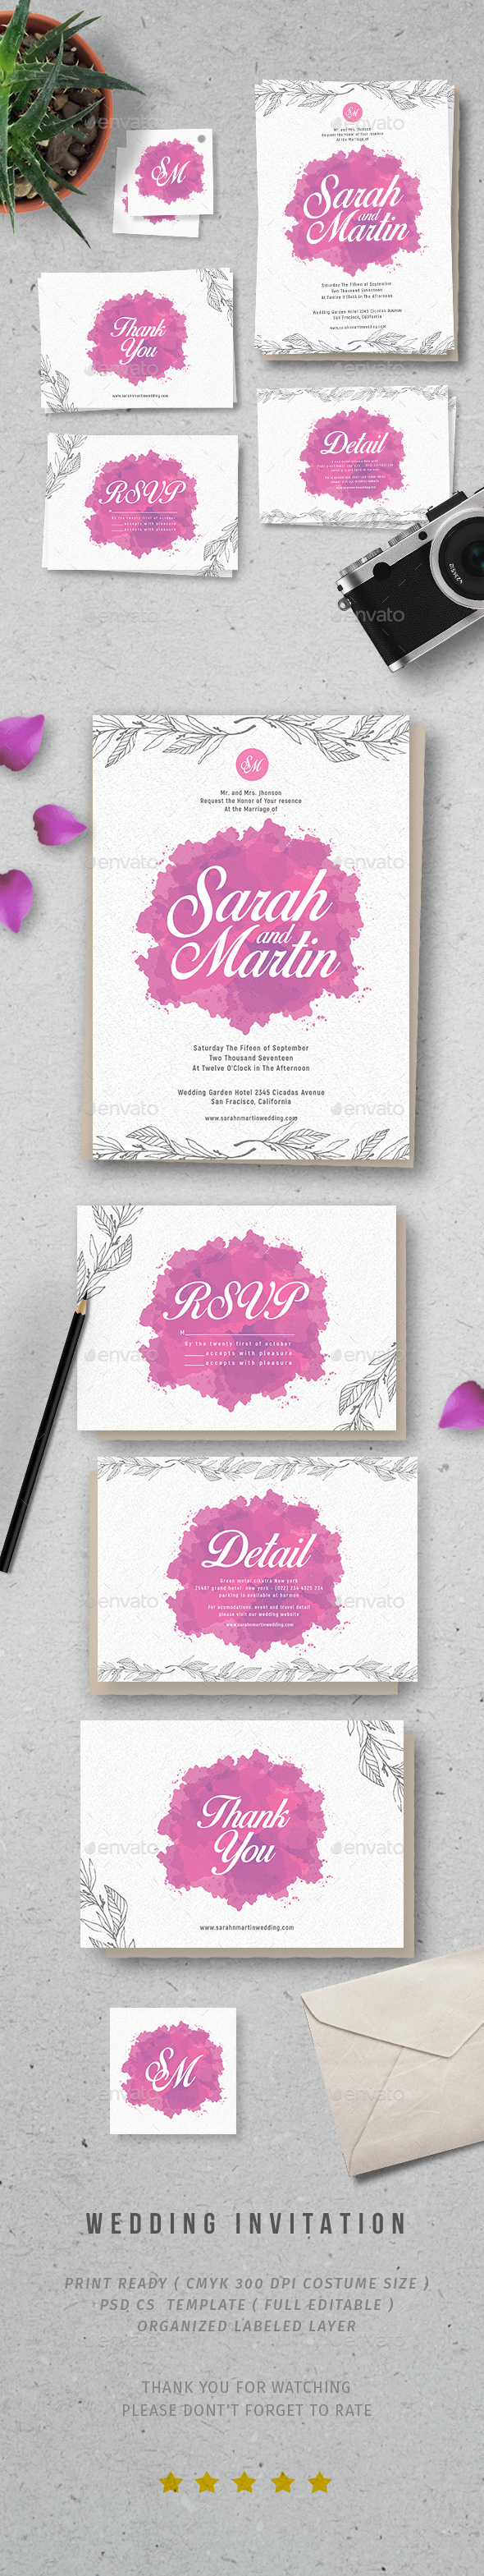 Watercolor Wedding Invitation - Invitations Cards & Invites